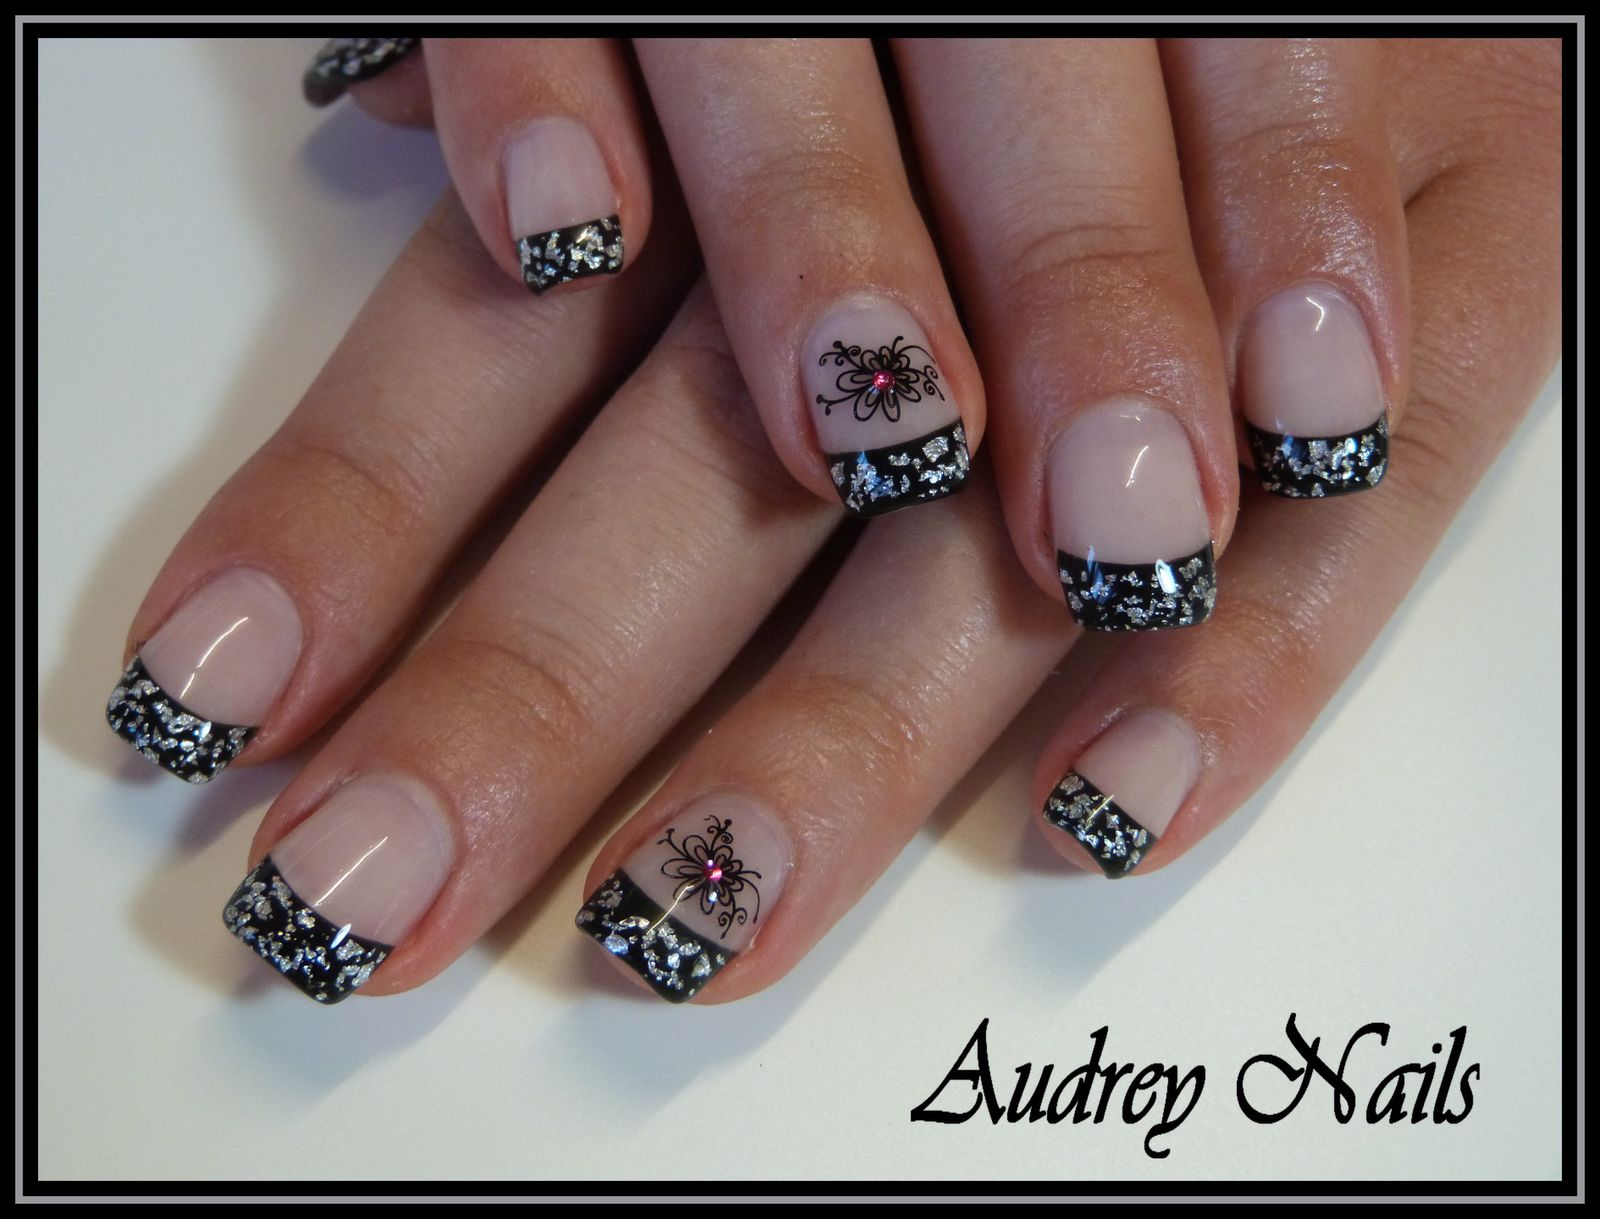 French noire + feuille d'argent + stamping + strass fushia